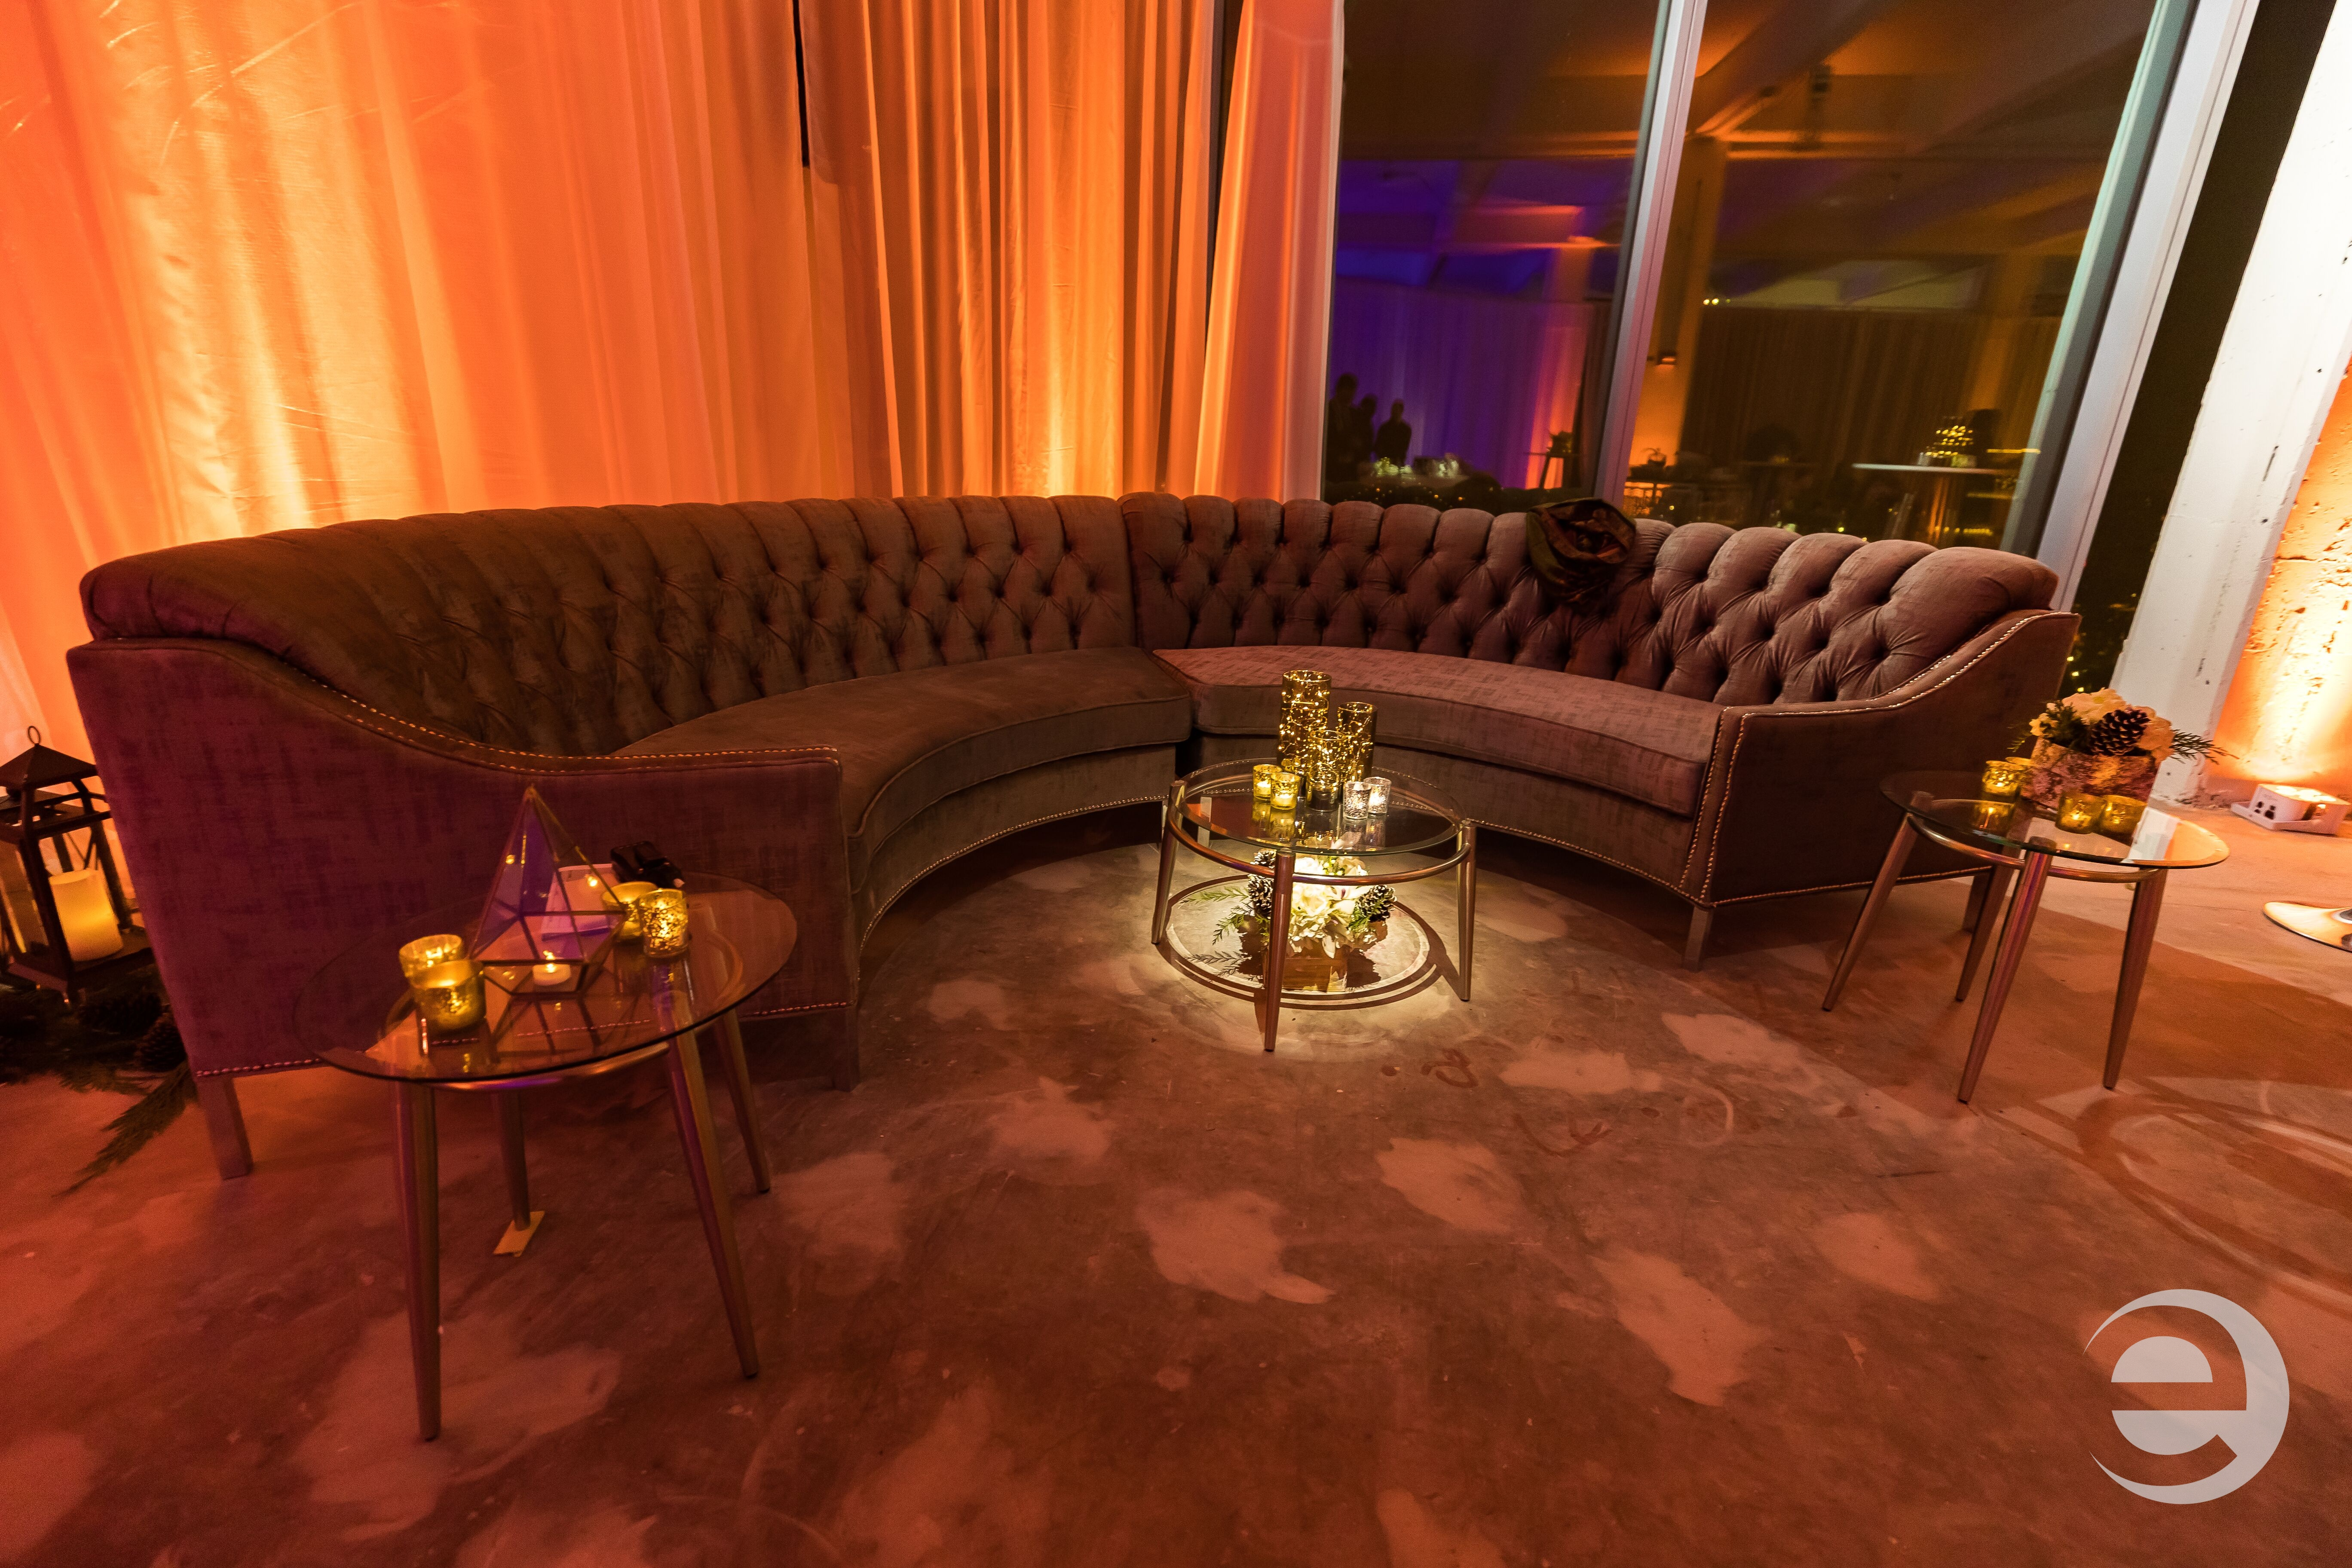 Lounge furniture, lighting setup for Sabey holiday corporate party in NY